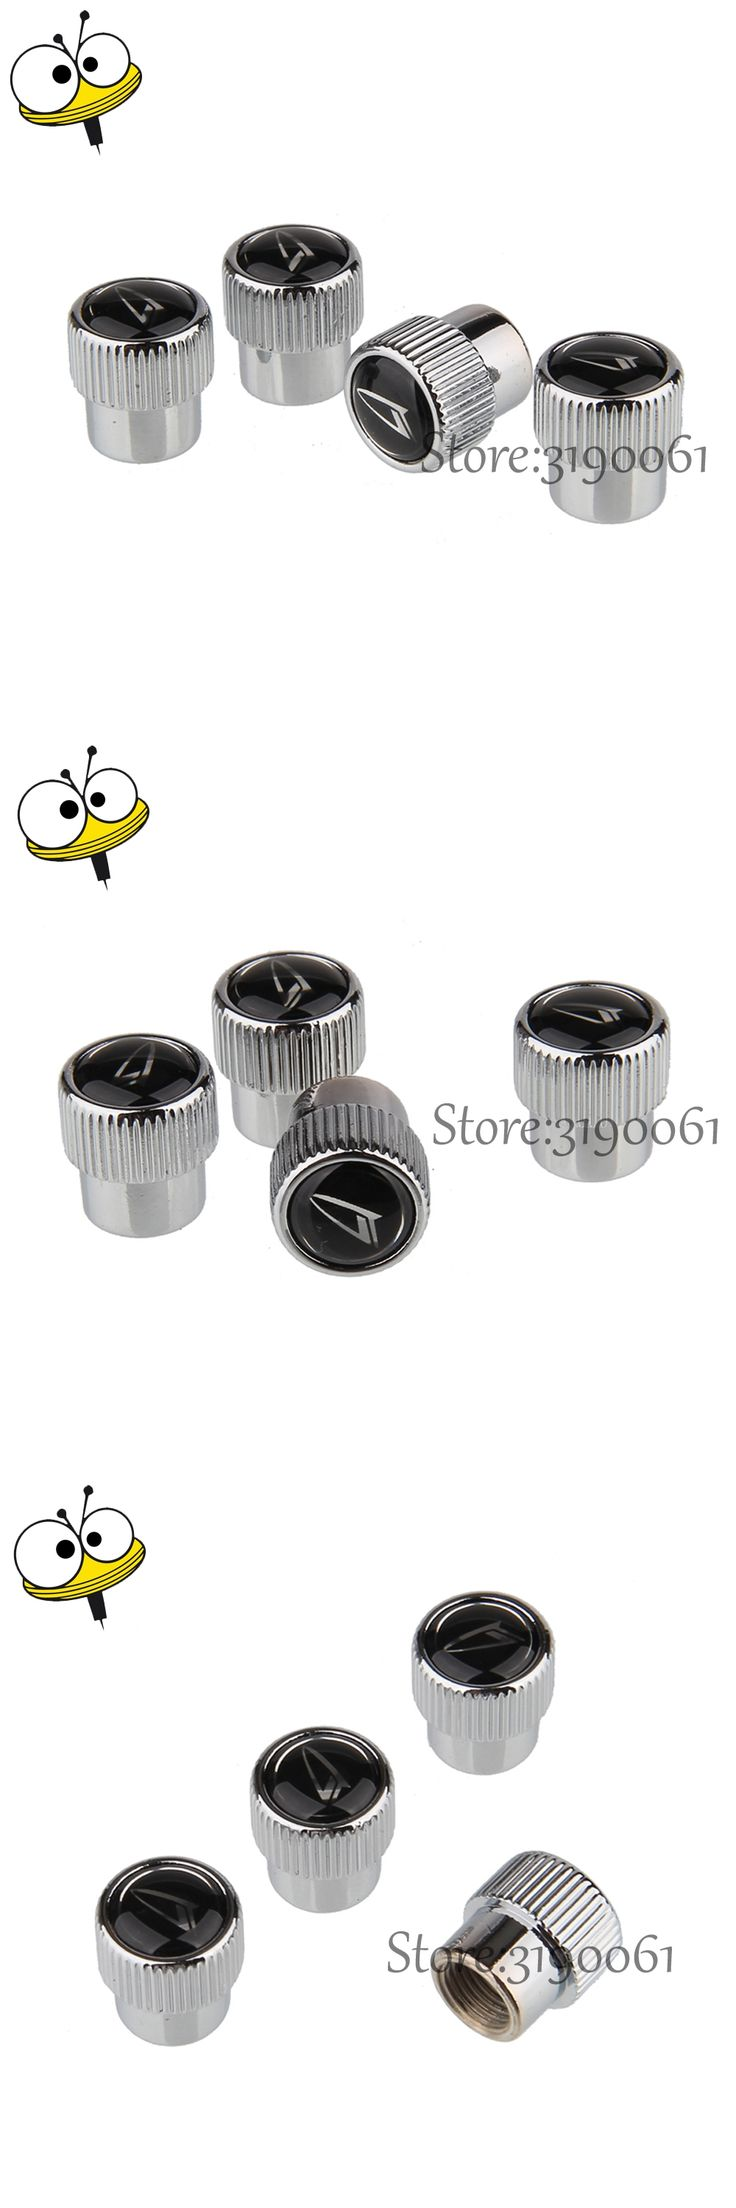 4 Pcs/set Car Accessories Tire Valve Stems Caps Auto Metal For Daihatsu Logo For Daihatsu DARIO TERIOS Charade MI-RA MOVE